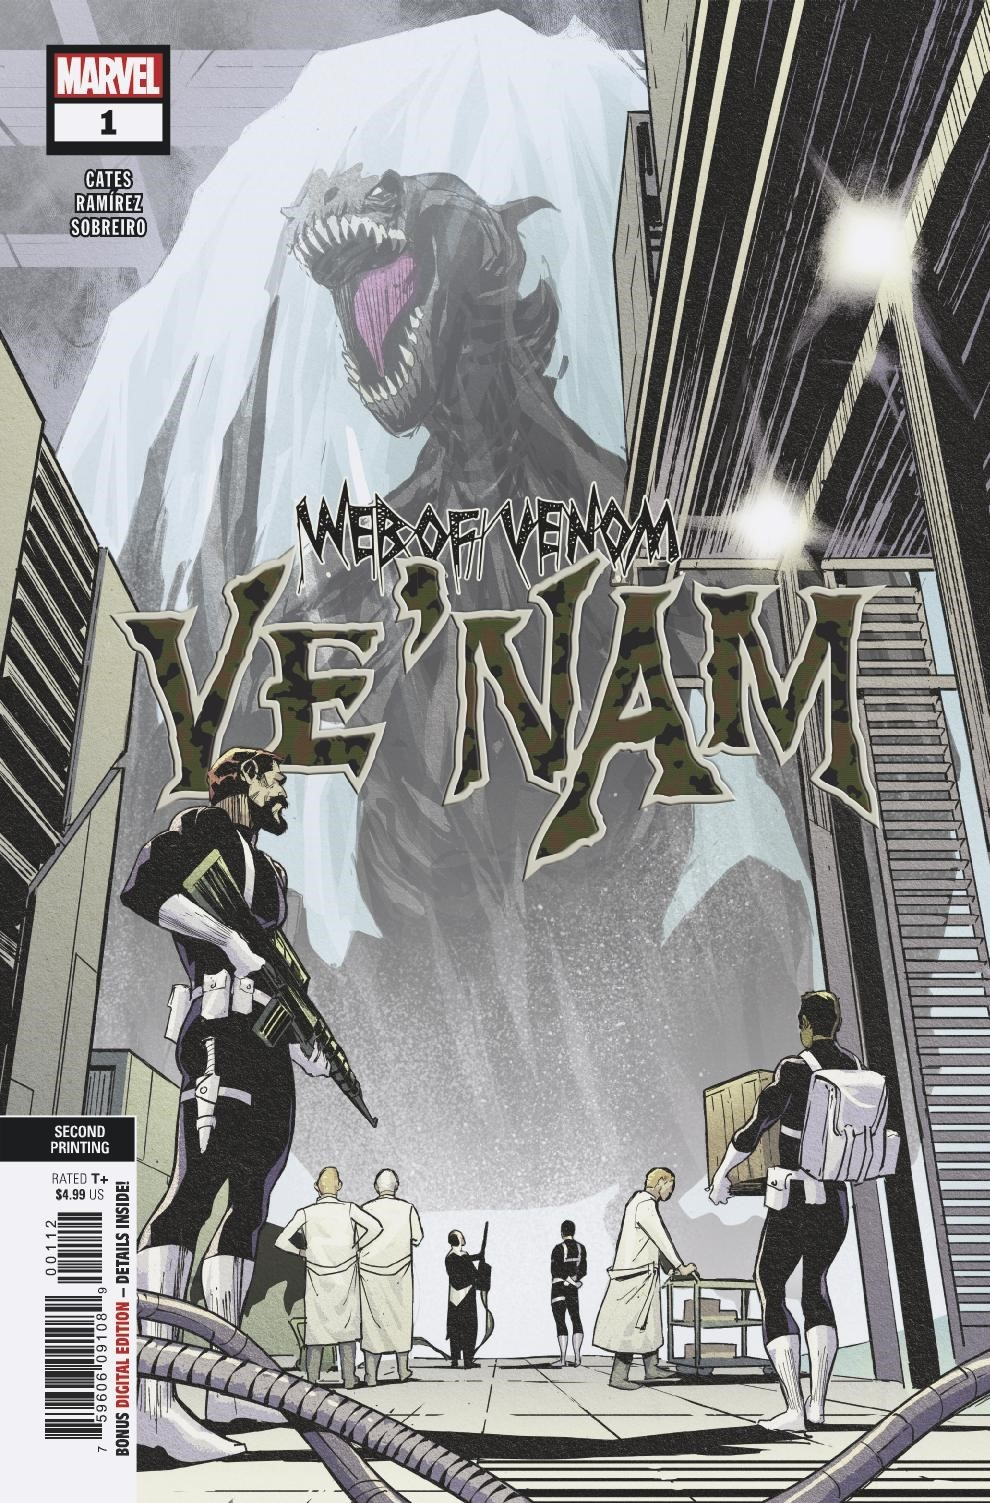 JUL188897 - WEB OF VENOM VE NAM #1 2ND PTG RAMIREZ VAR - Previews World